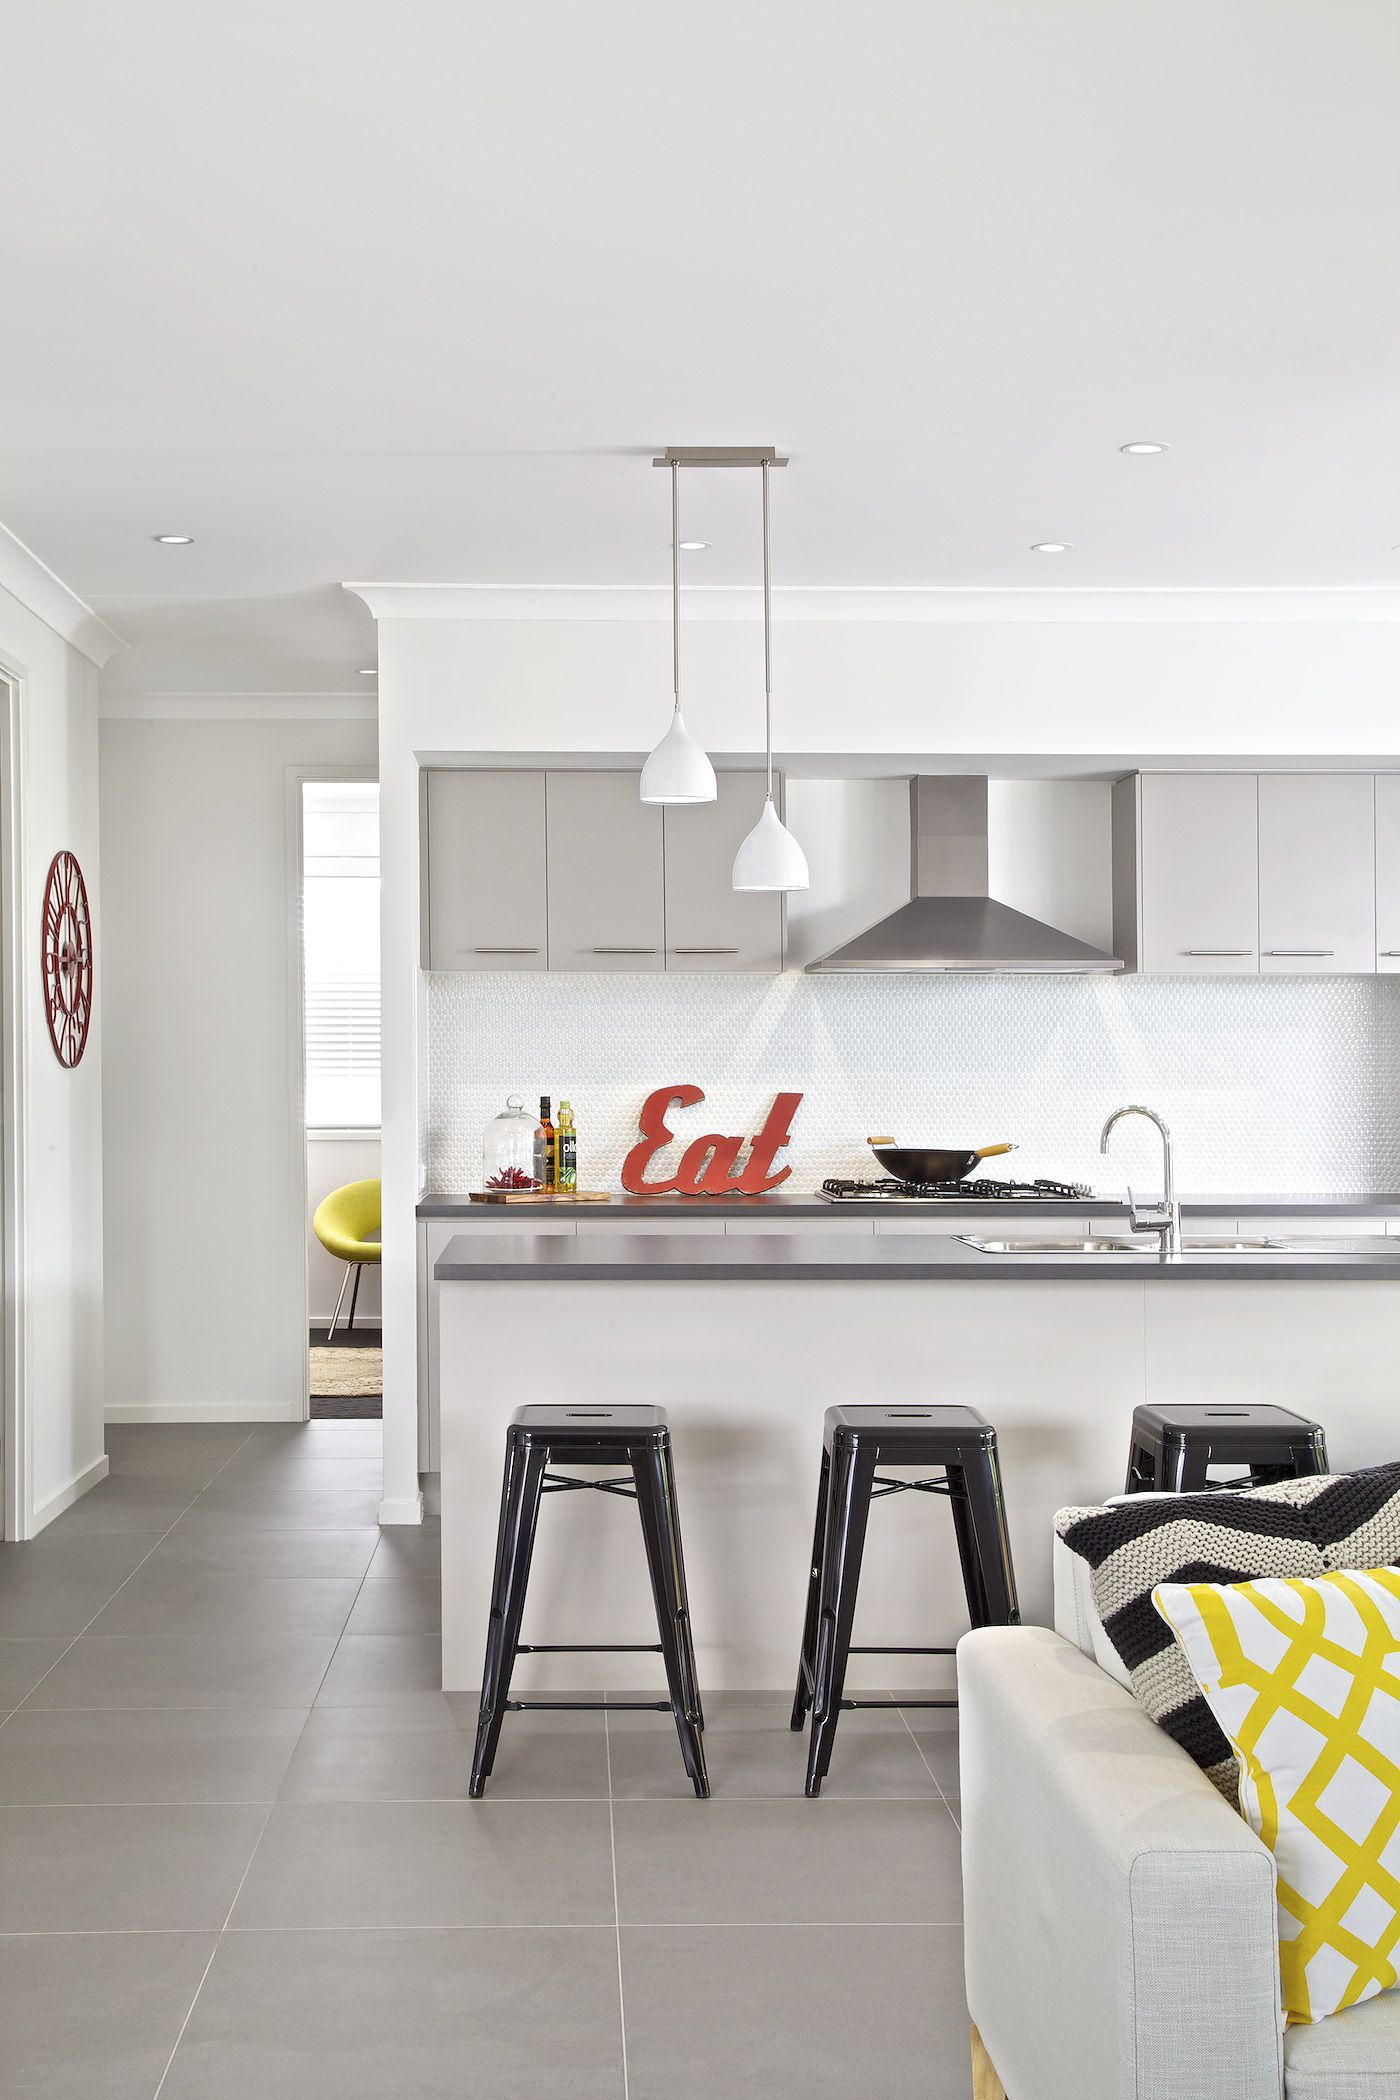 Clarendon Homes. Ascot 32. Kitchen with industrial metal stools ...